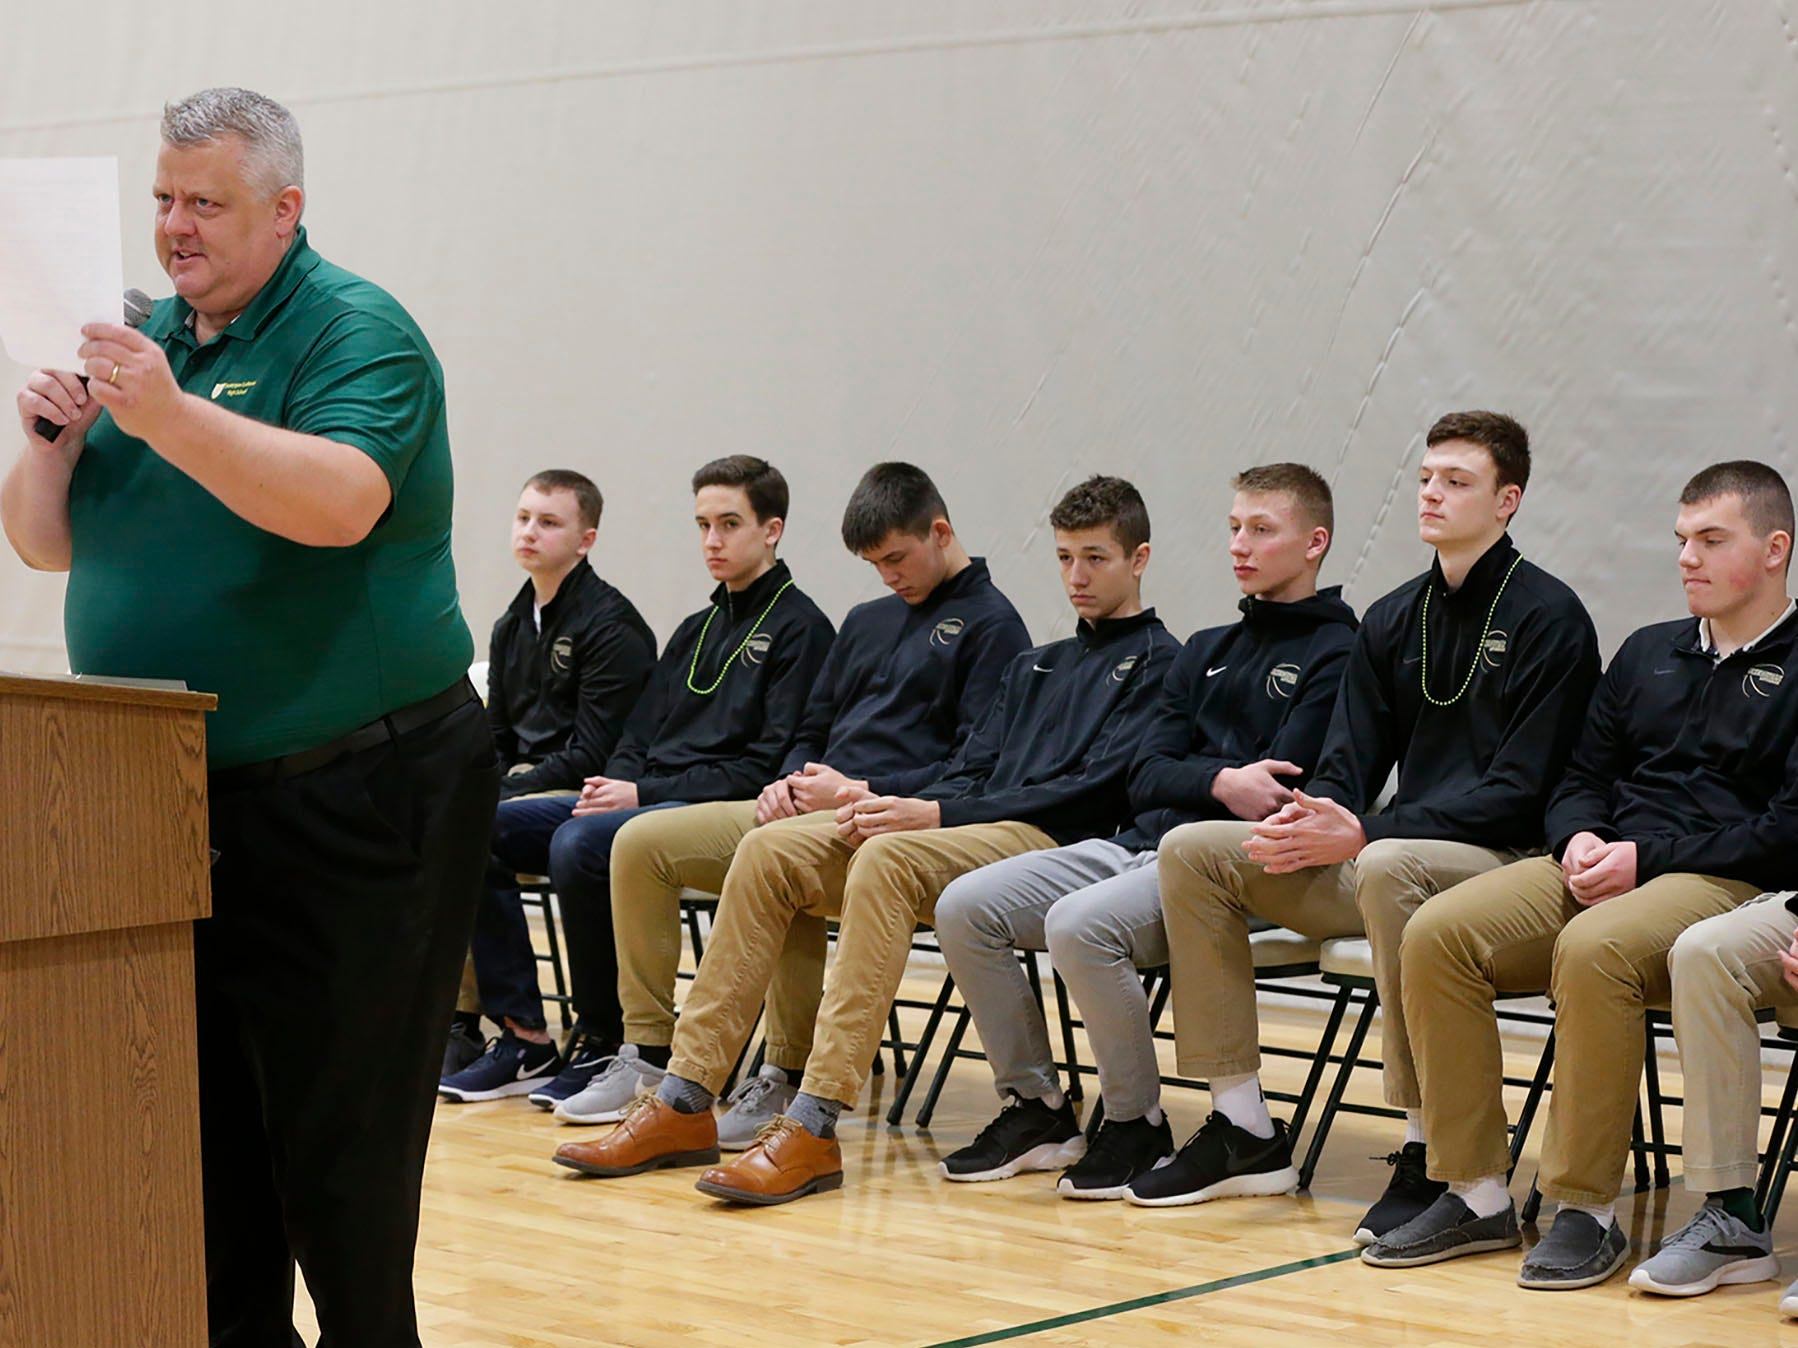 Sheboygan Lutheran's principal Al Holzheimer informs the students of standards of conduct in Madison for the basketball tournament during a rally, Thursday, March 14, 2109, in Sheboygan, Wis.